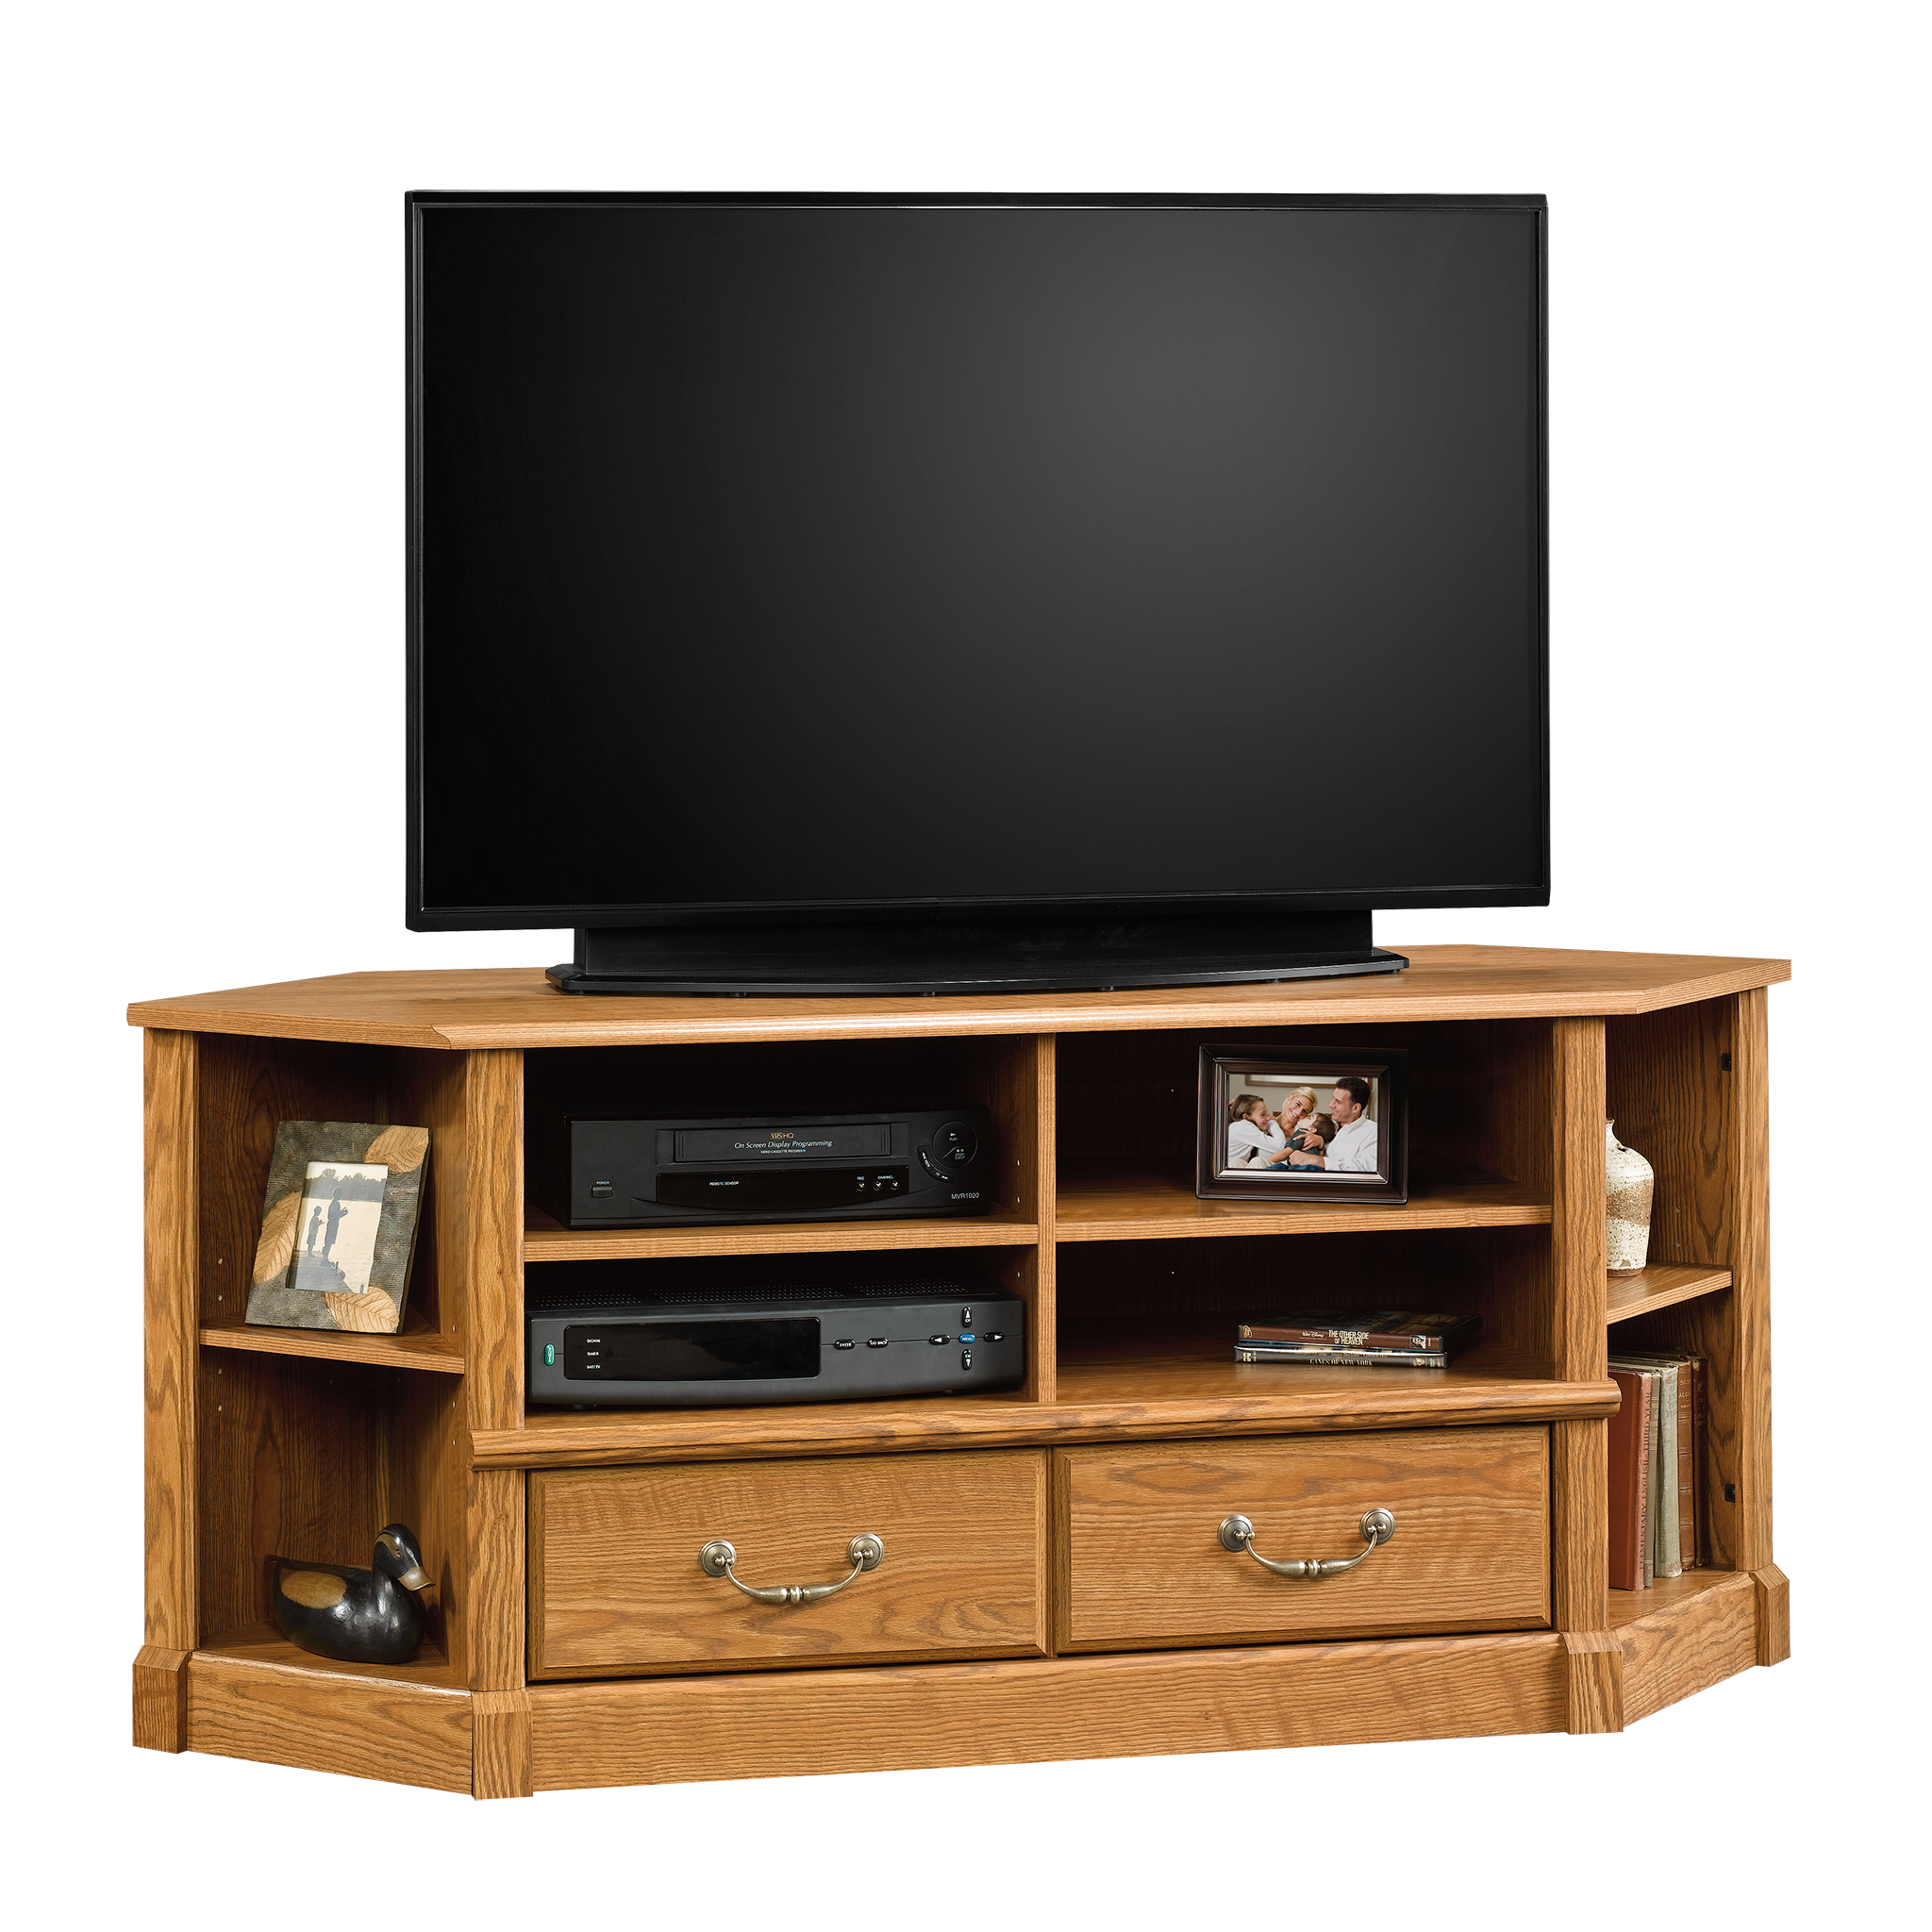 "Sauder Orchard Hills Corner Entertainment Credenza for TVs up to 50"", Carolina Oak Finish"